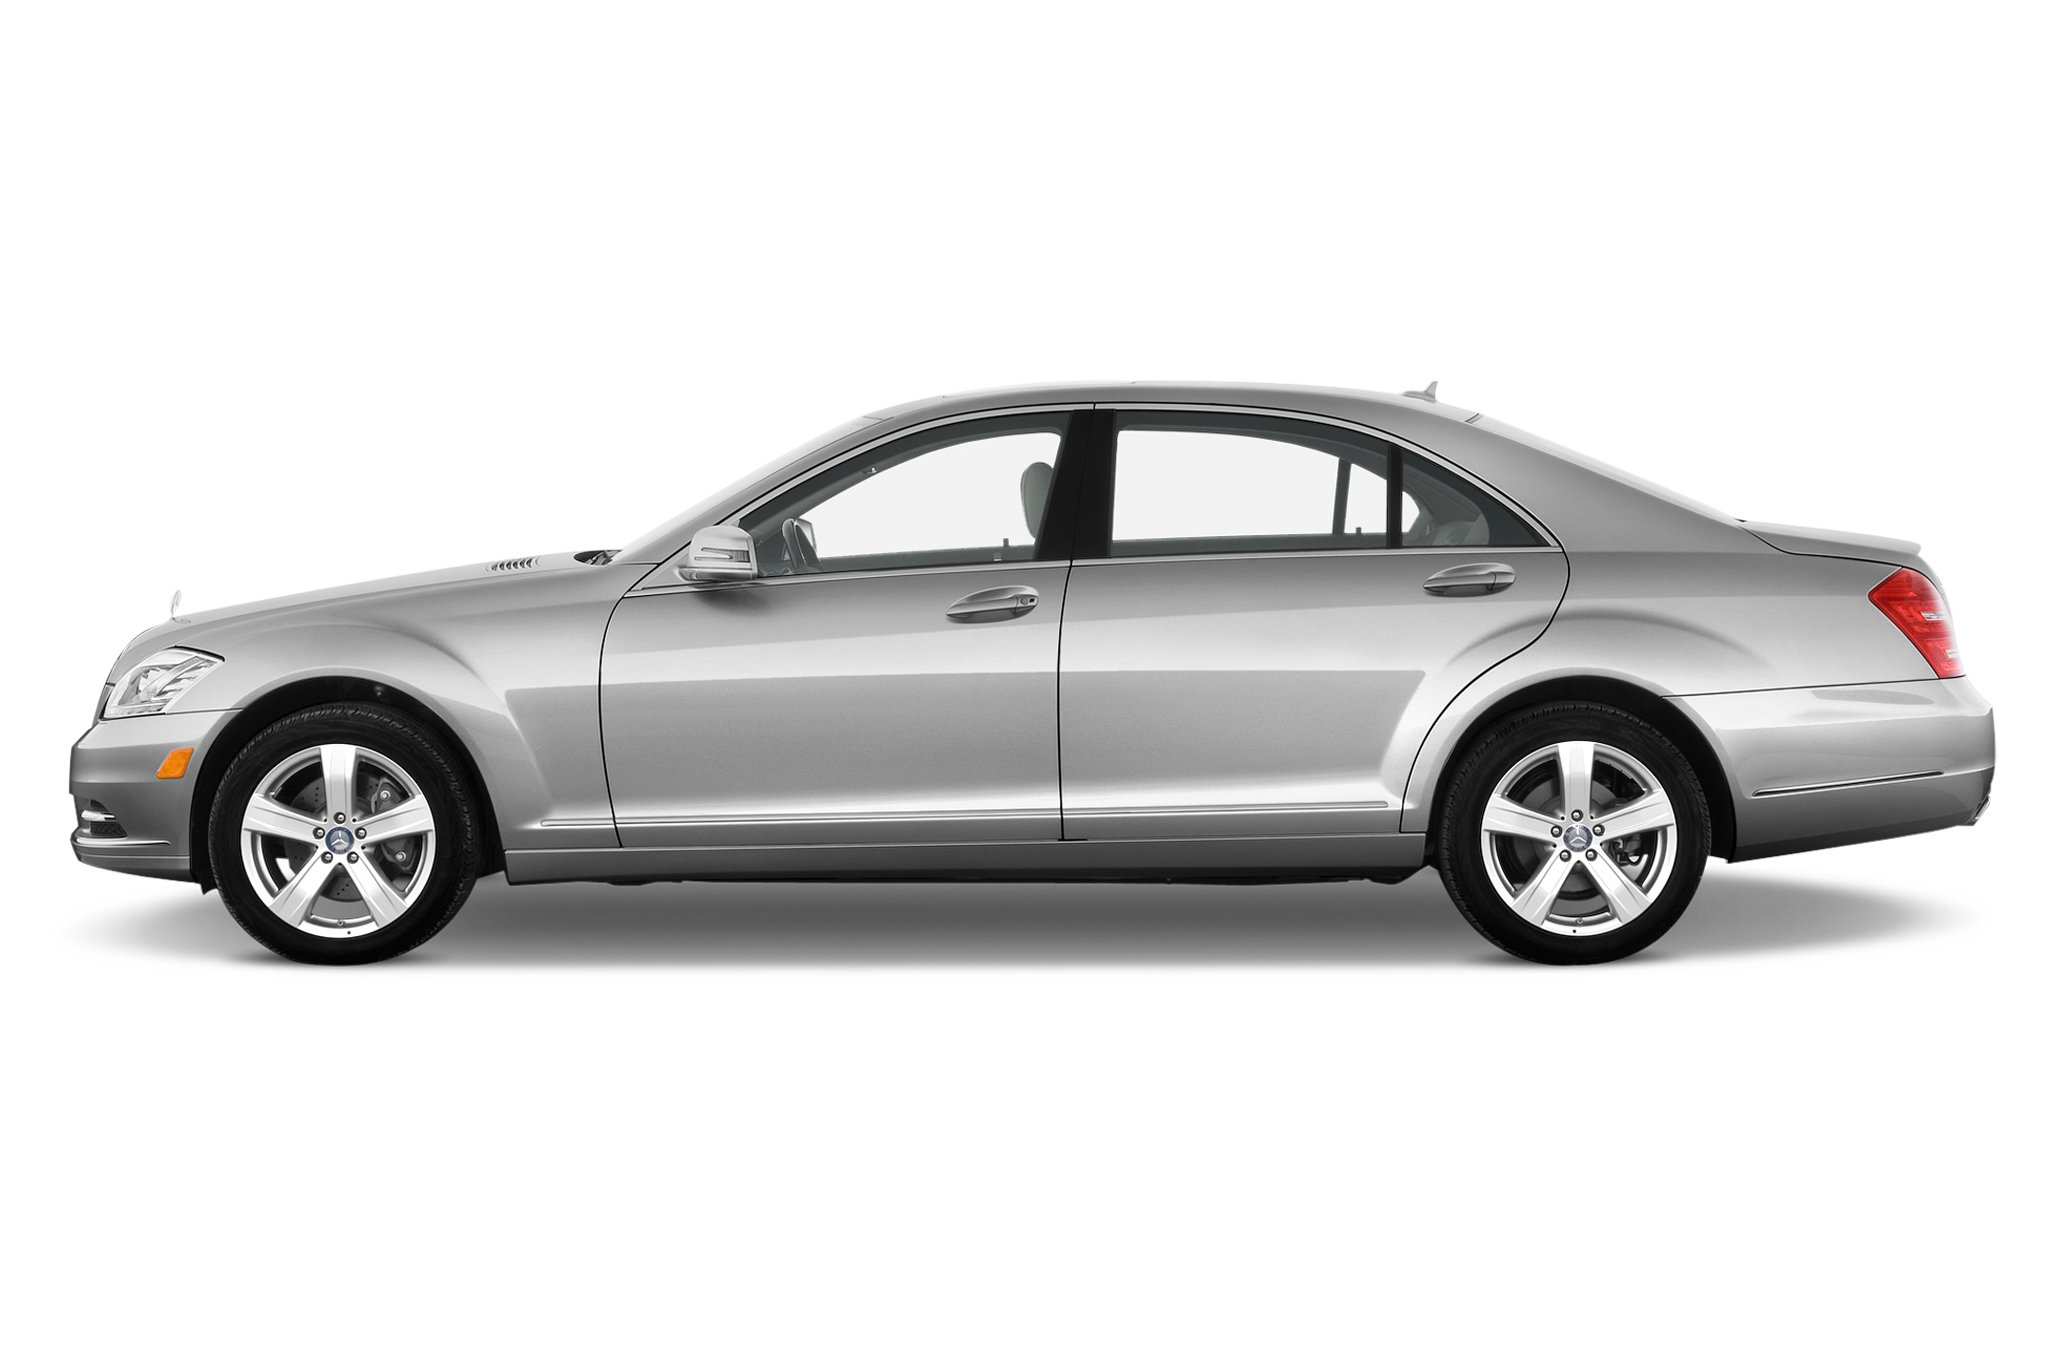 auction benz mercedes valuation class image data for and sales s results sale